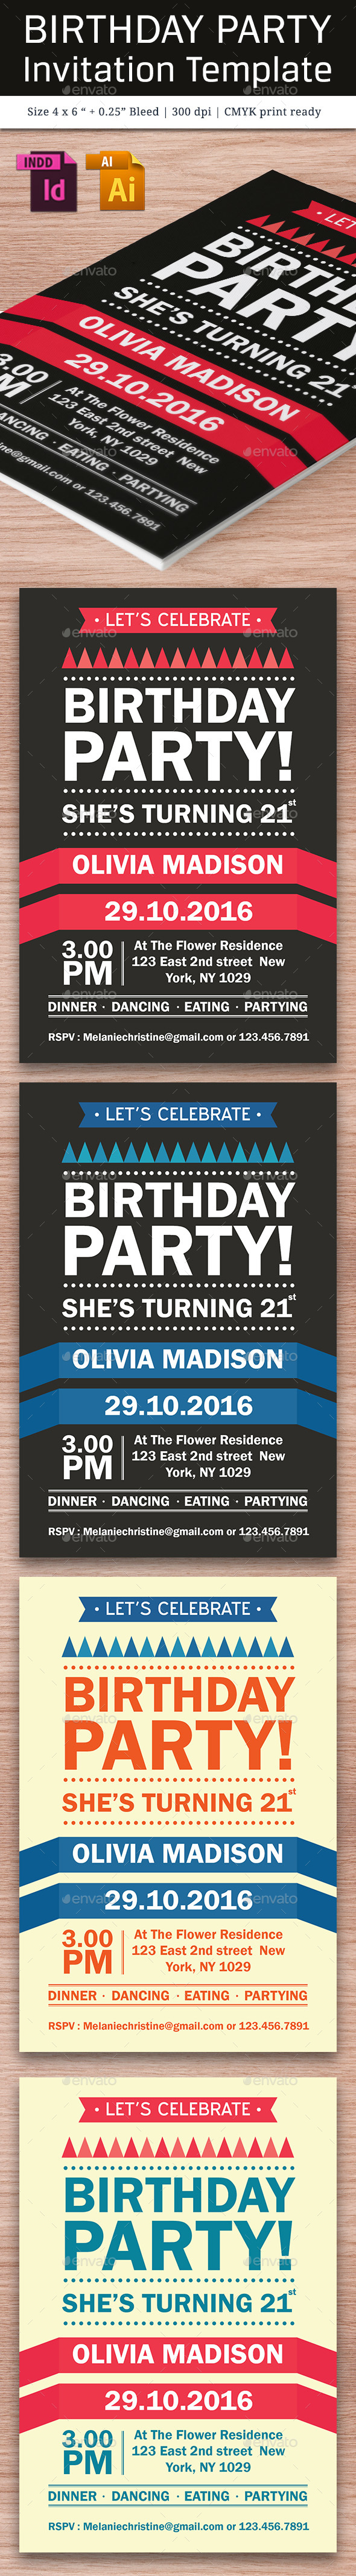 Birthday Party Invitation Template - Vol . 10 - Cards & Invites Print Templates